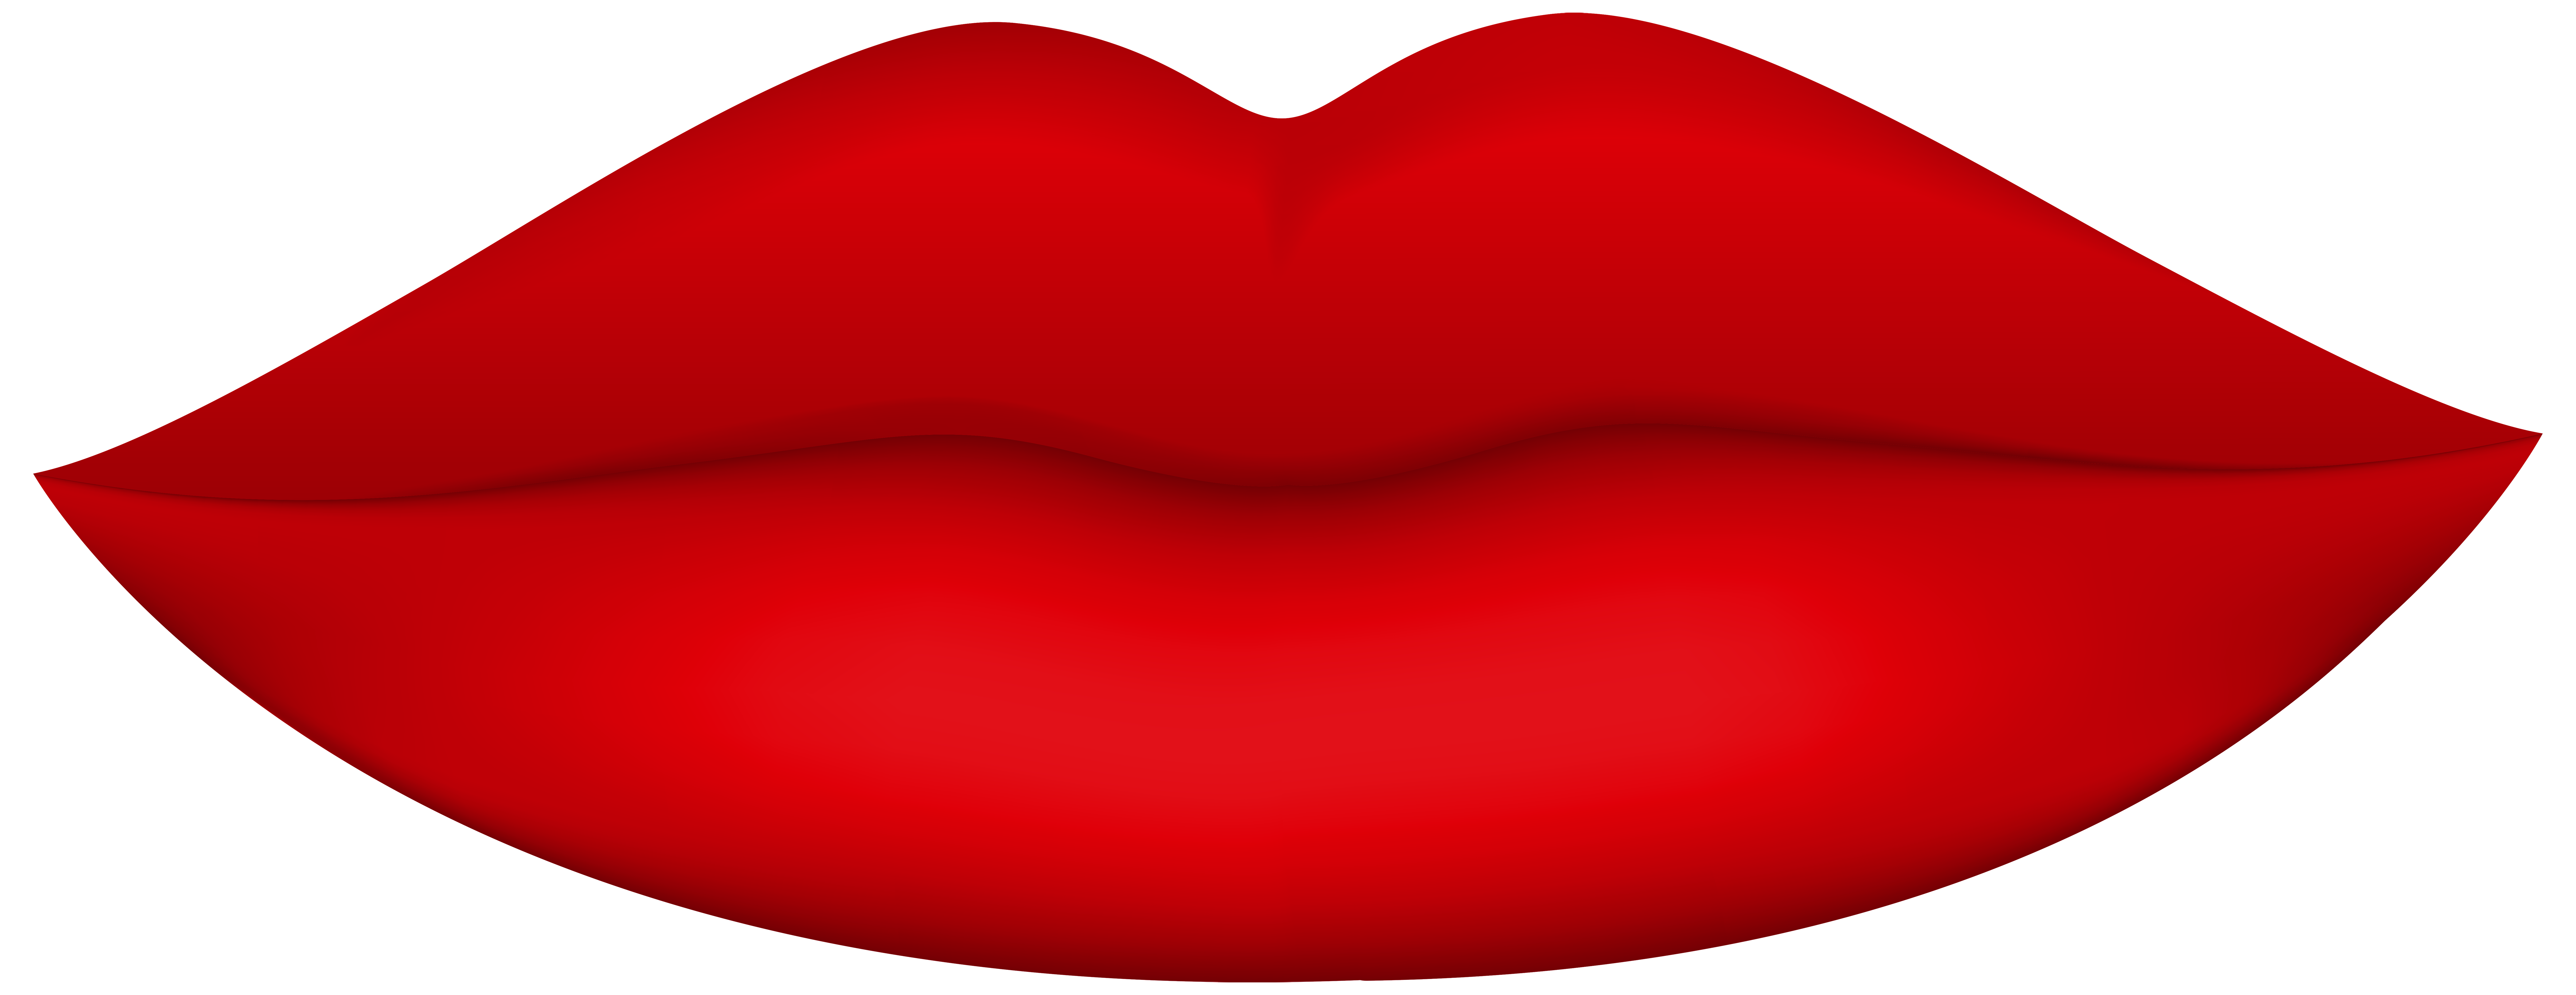 lips clipart at getdrawings com free for personal use lips clipart rh getdrawings com lip clipart lip clip art of ww2 war planes of ww2 w